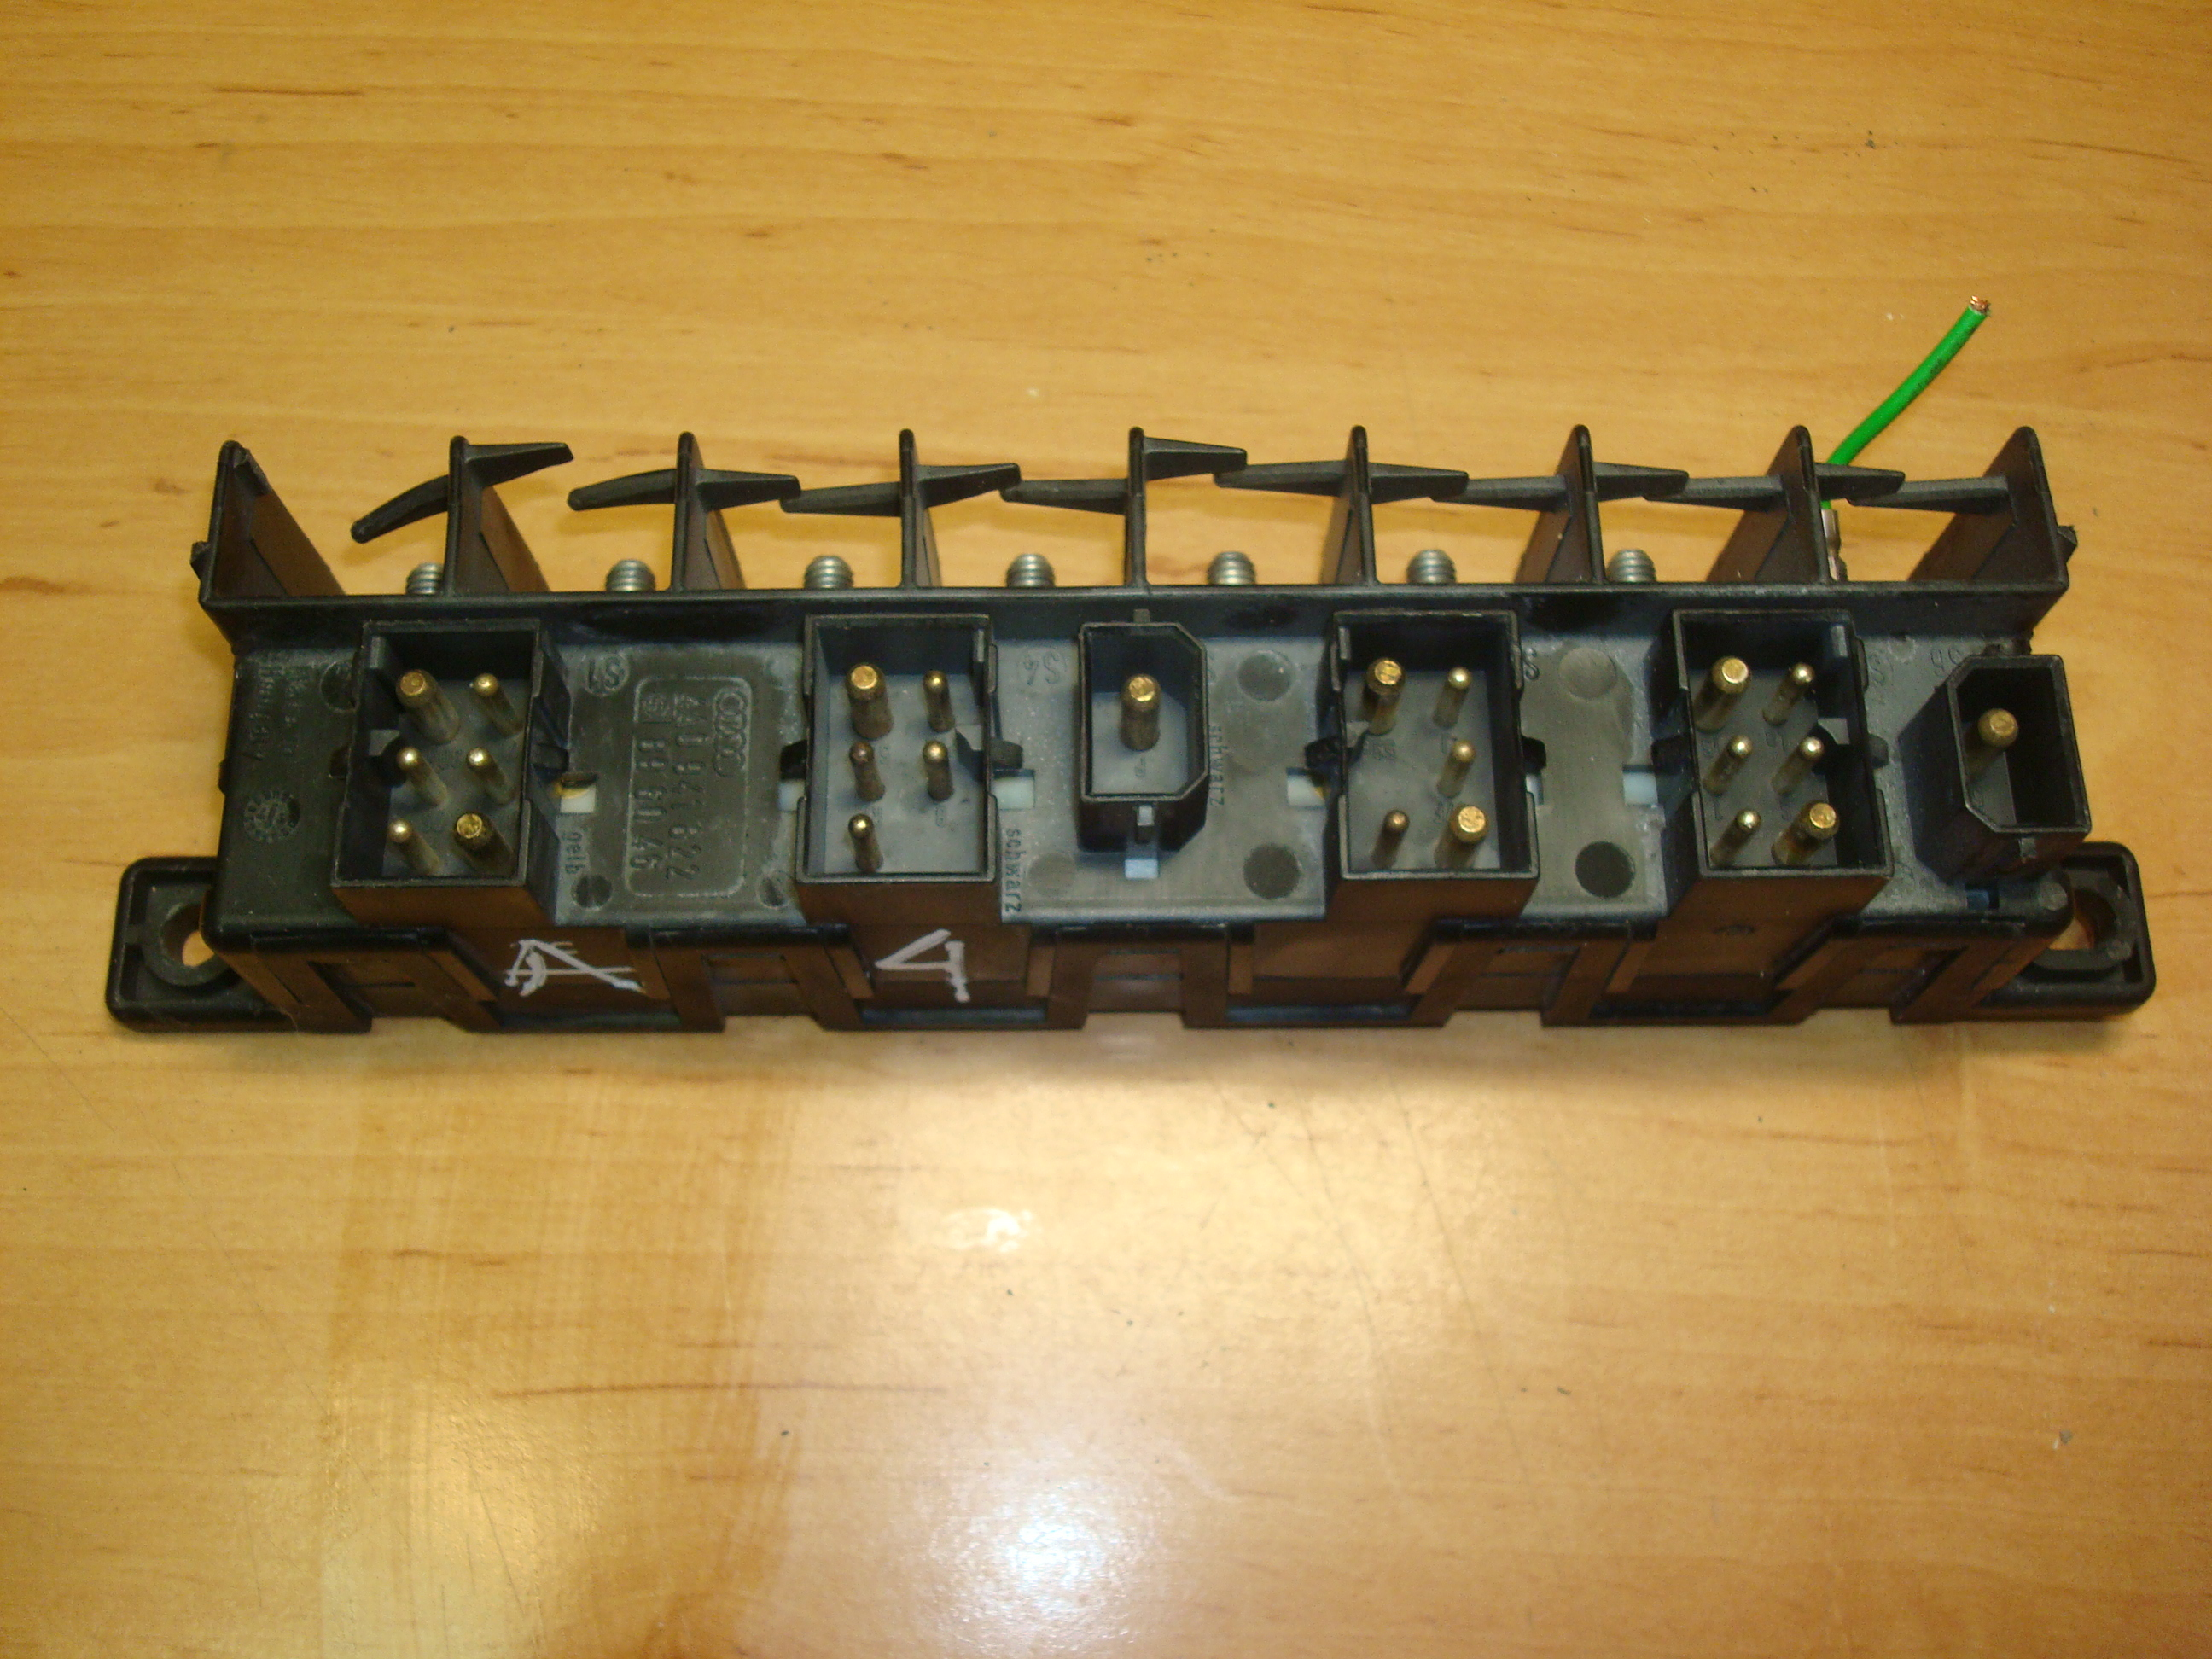 Audi A4 A6 Fuse Box Relay Plate 4a0941822 98 Article 4a0 941 822 89 60 46